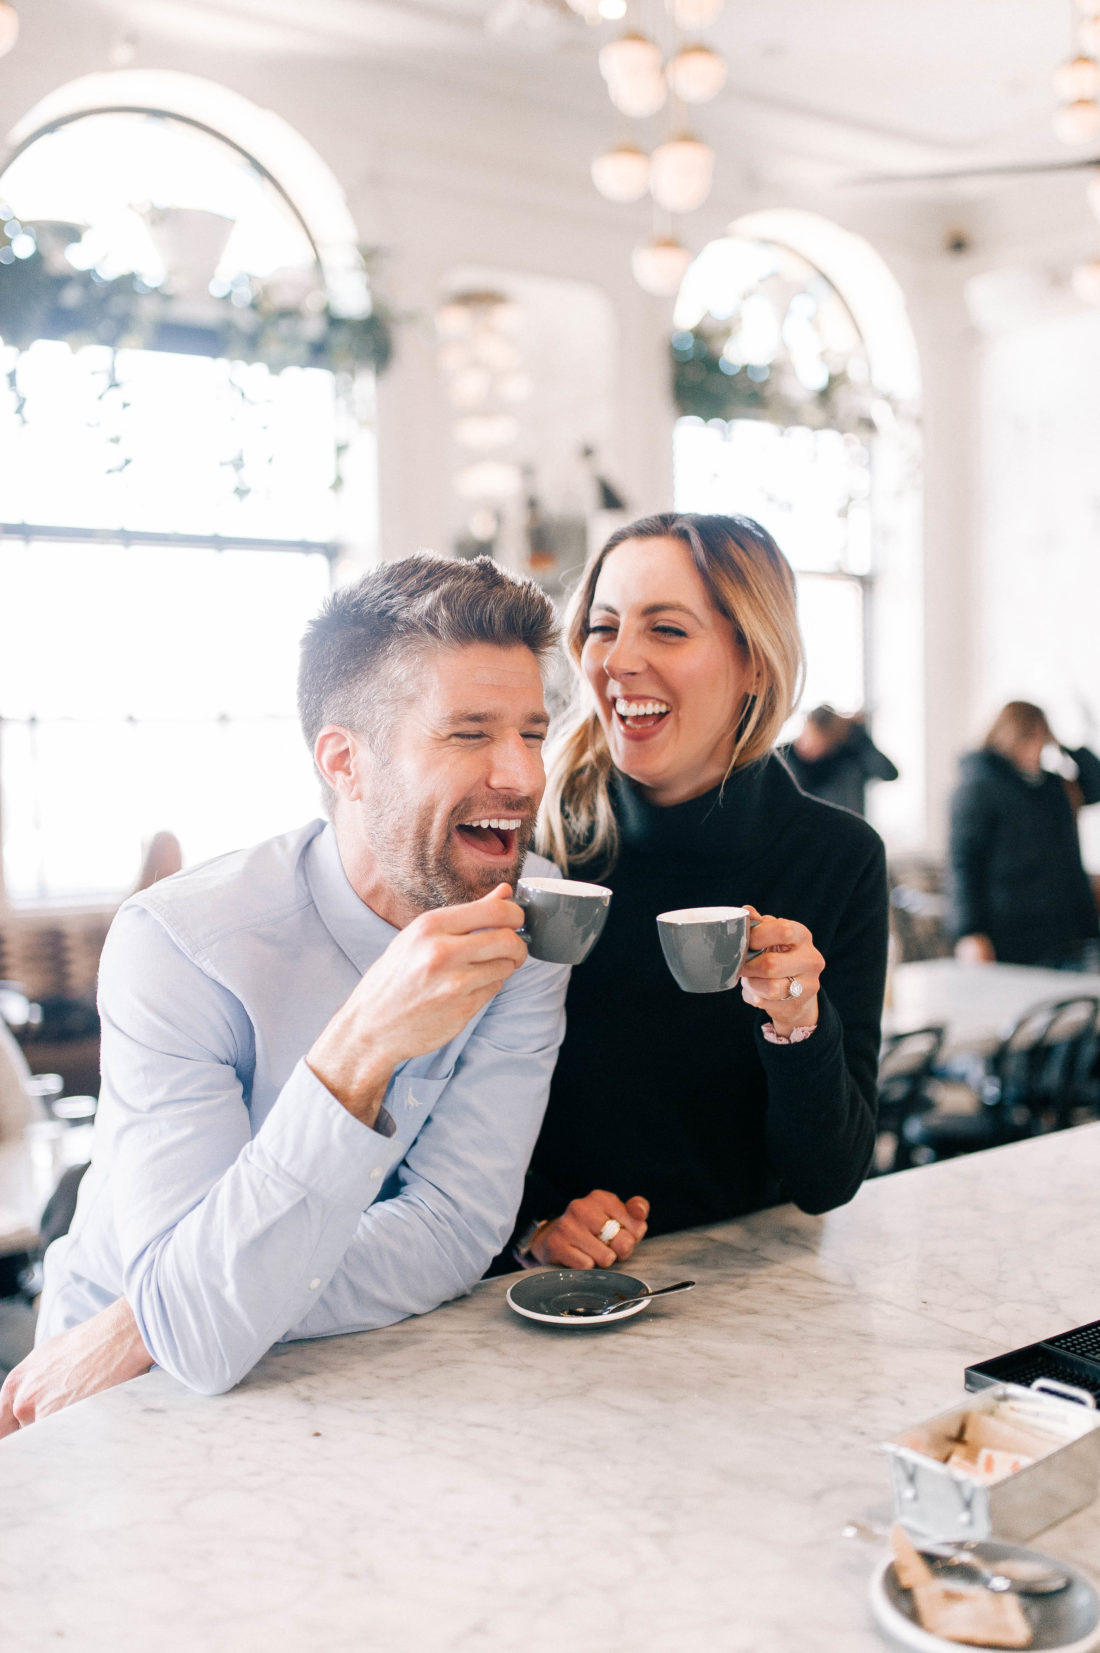 Eva Amurri Martino and Kyle Martino laugh together while drinking espresso at the bar of an NYC restaurant